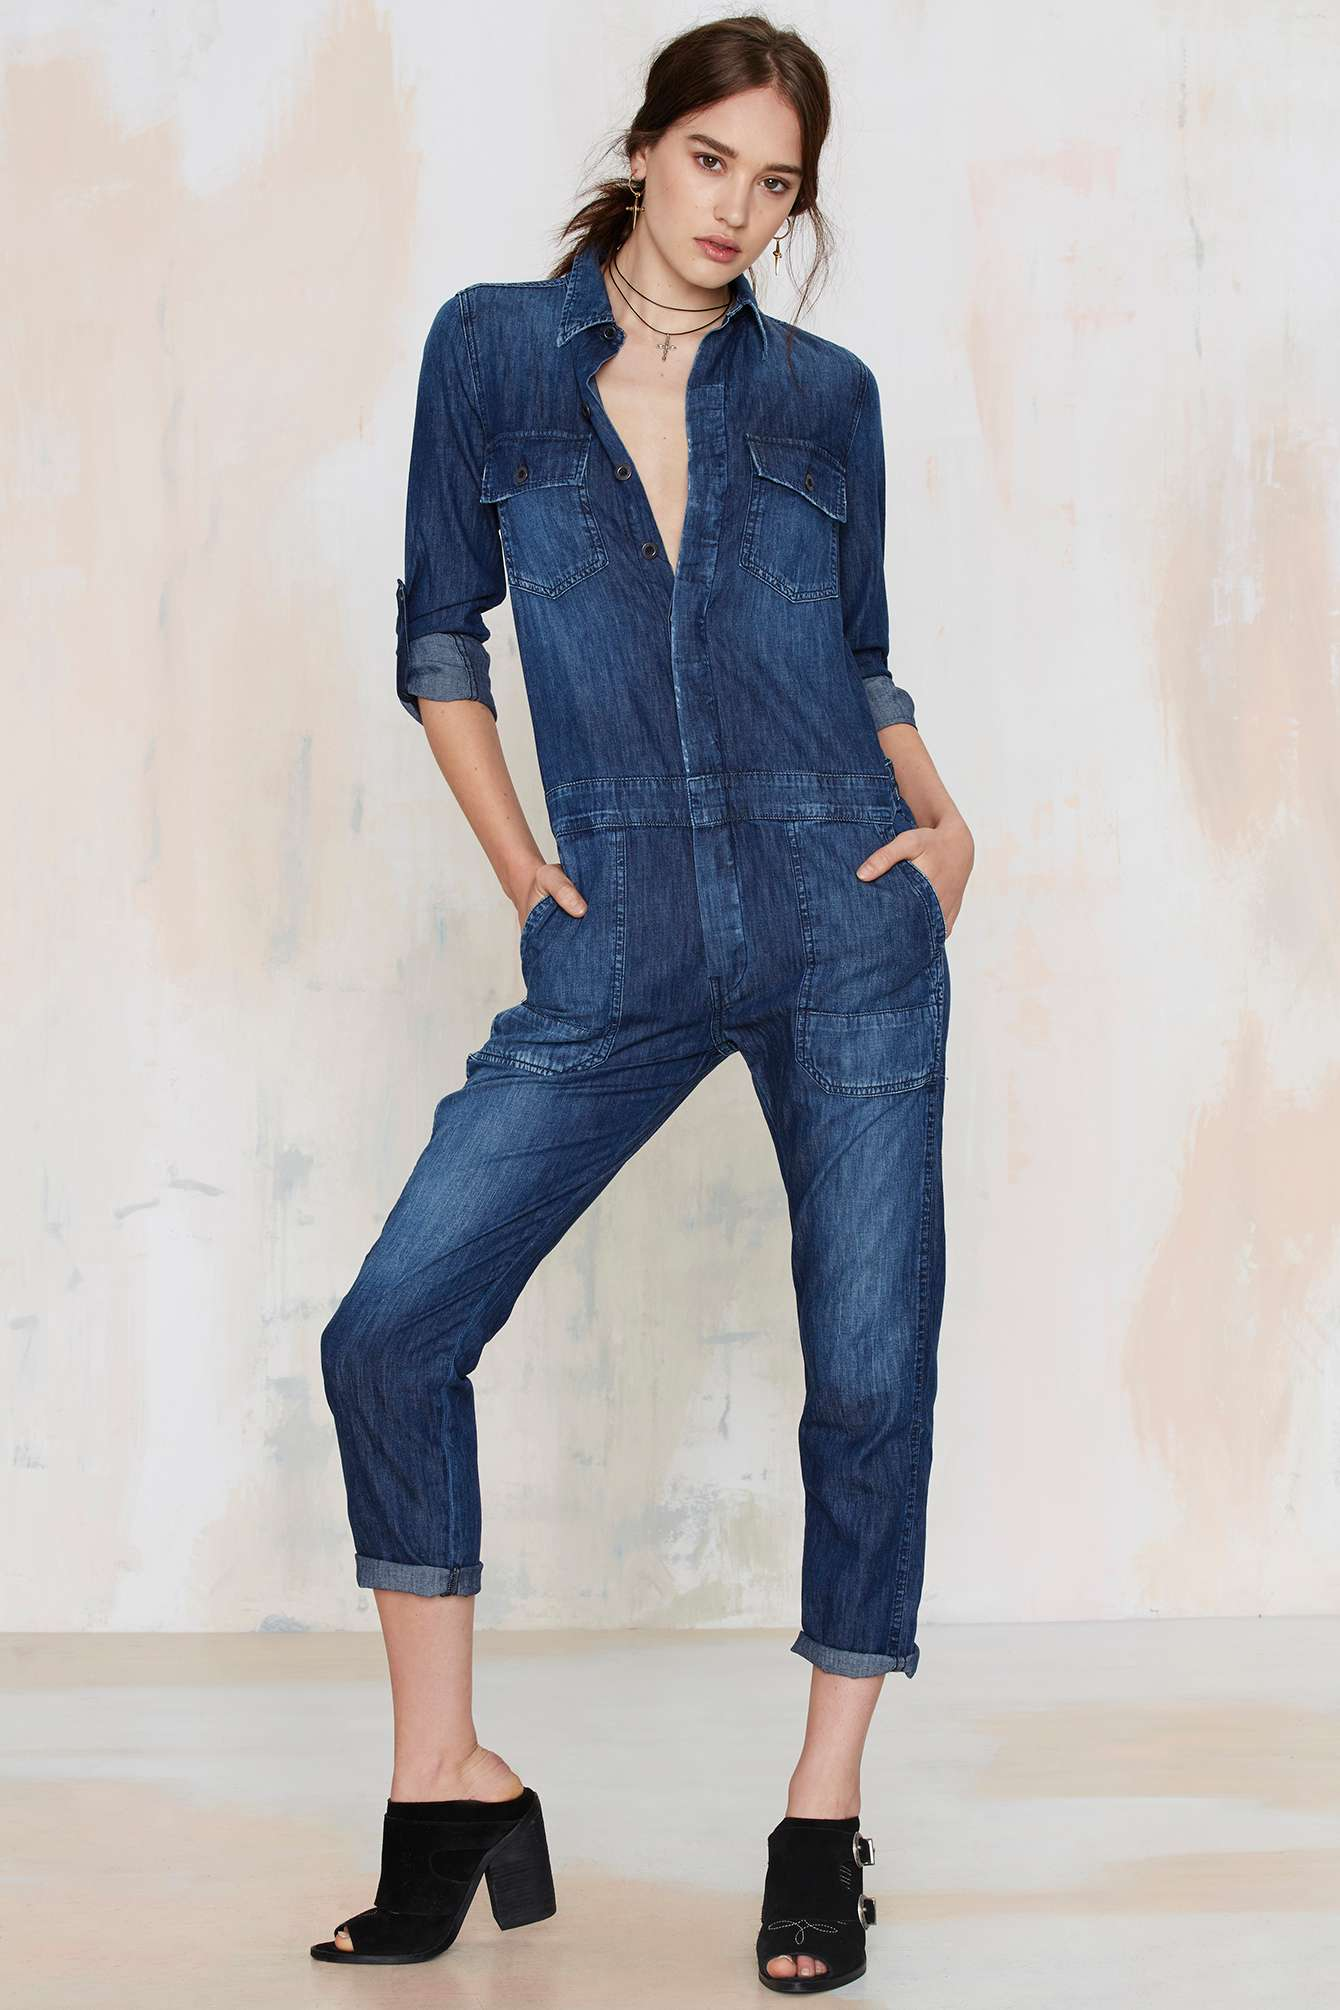 Tight jumpsuits are made from rayon spandex so they will be stretchy and give you room to move. A Women's jumpsuit doesn't have to be something you would see Cat woman where, there are loos fitting jumpsuits that can be worn in a casual environment.